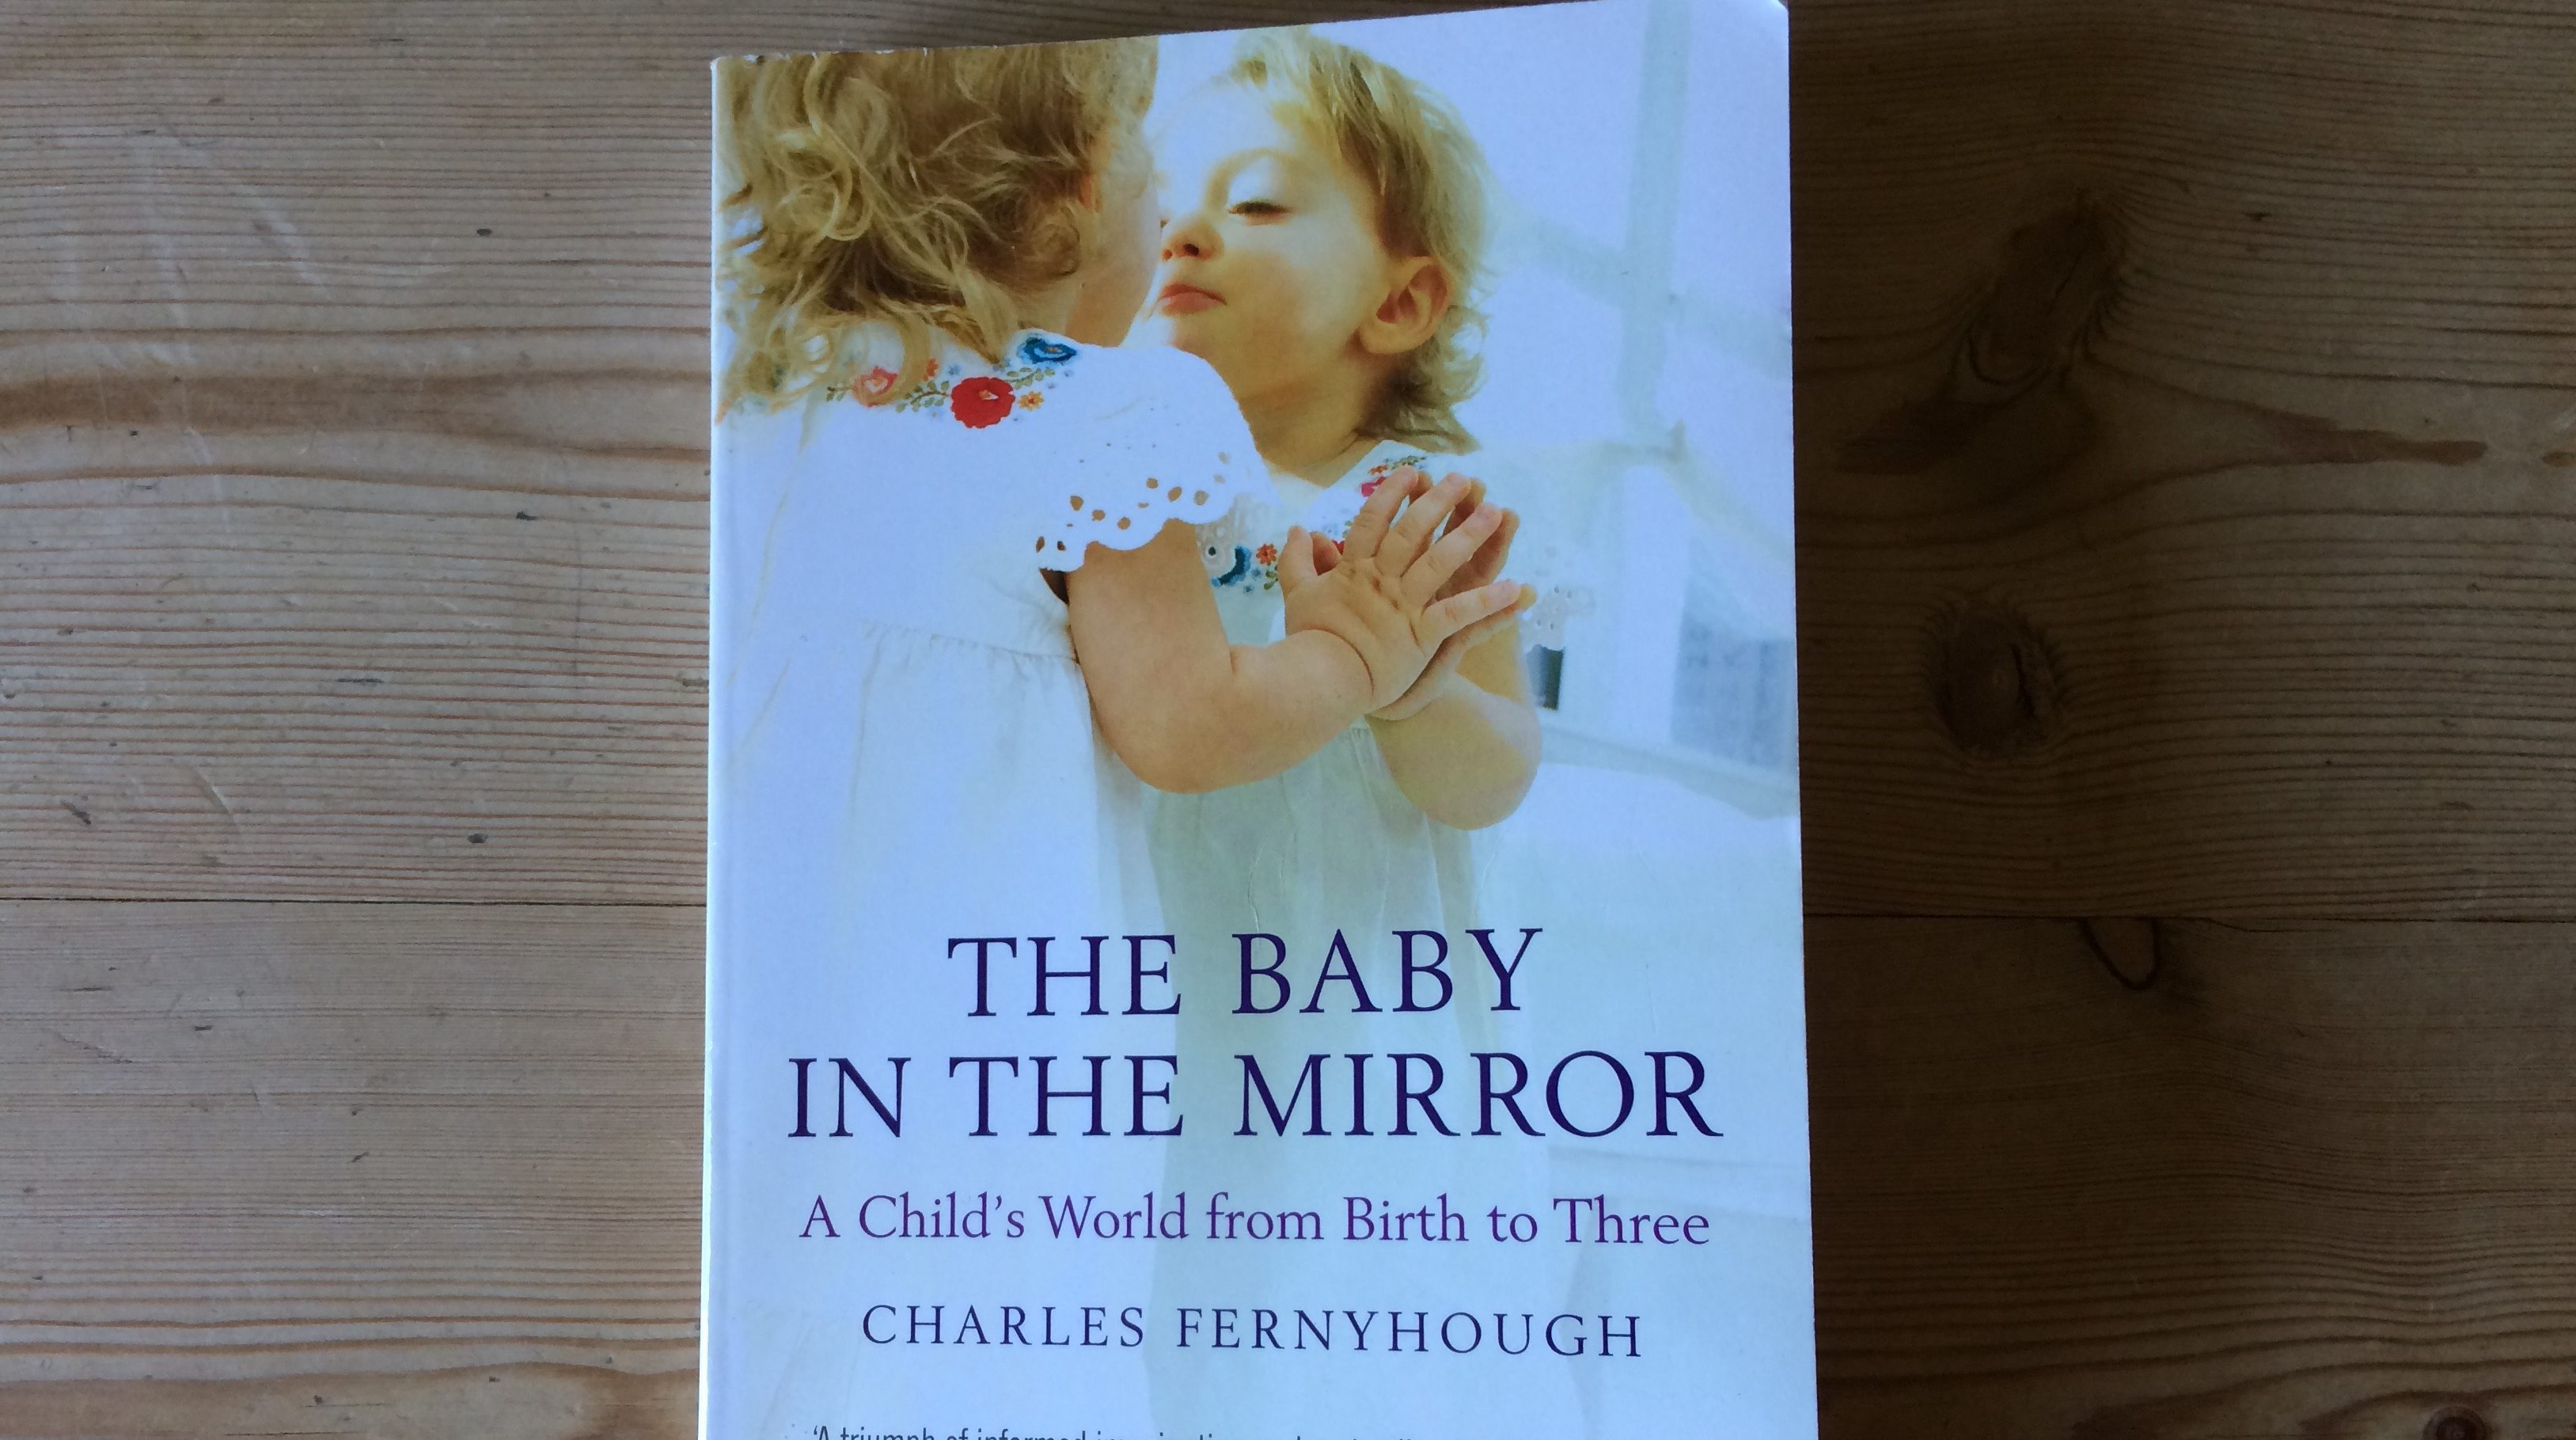 The Baby in the Mirror, by Charles Fernyhough